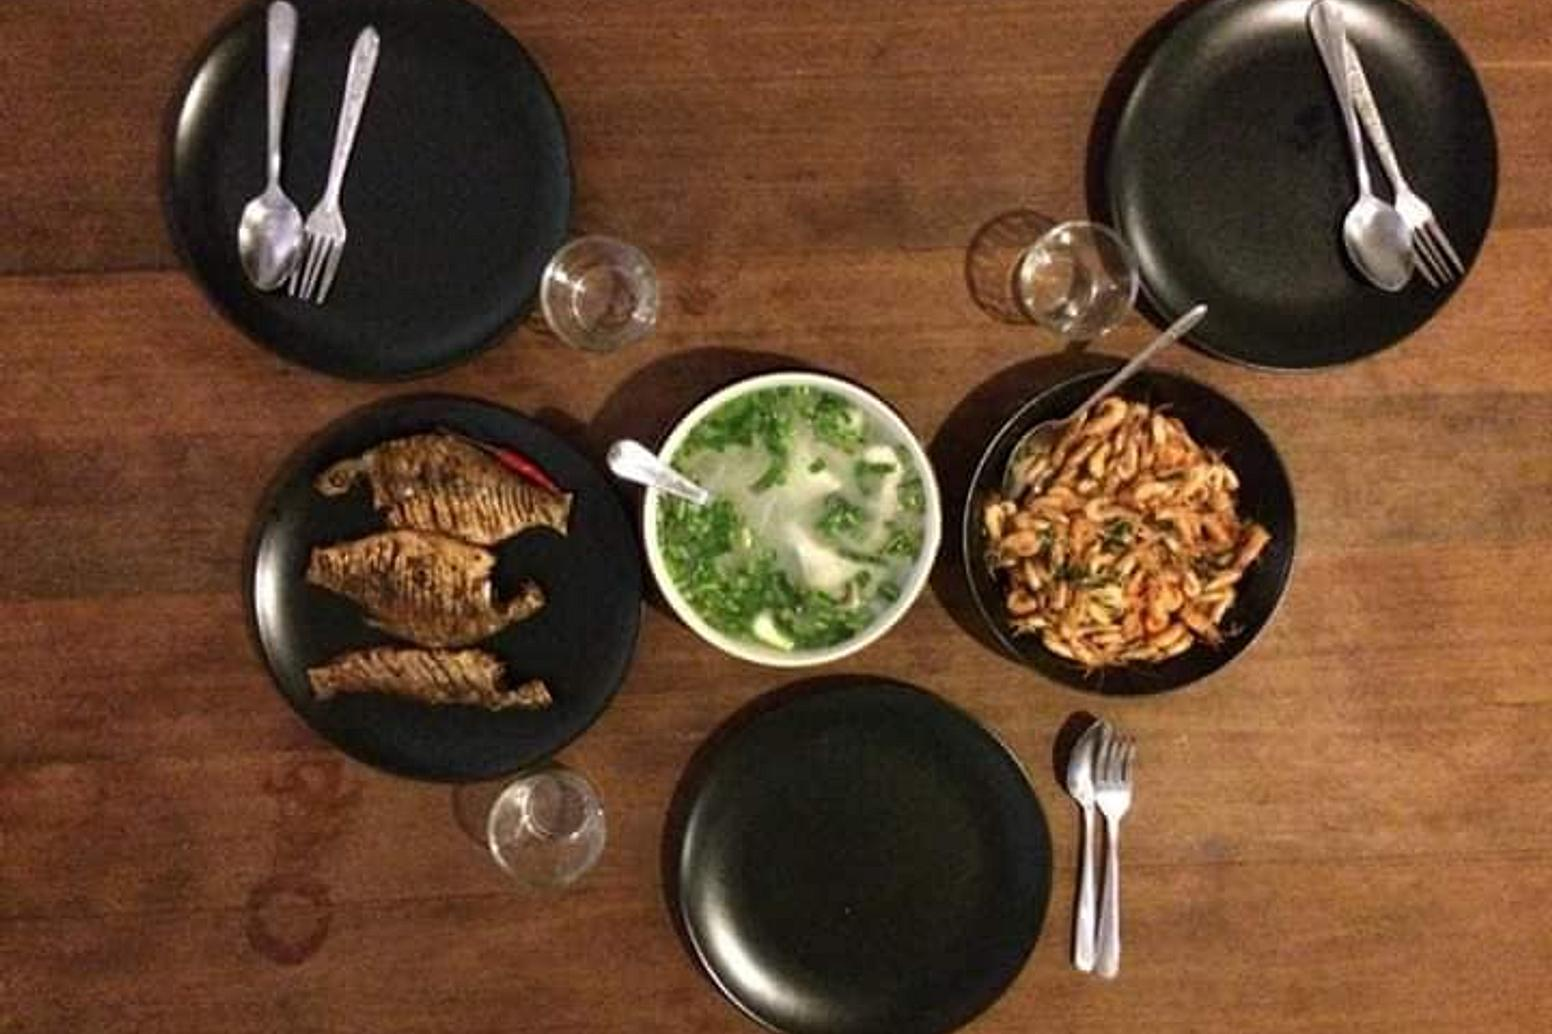 Our host will prepare three Khmer dishes for the guests